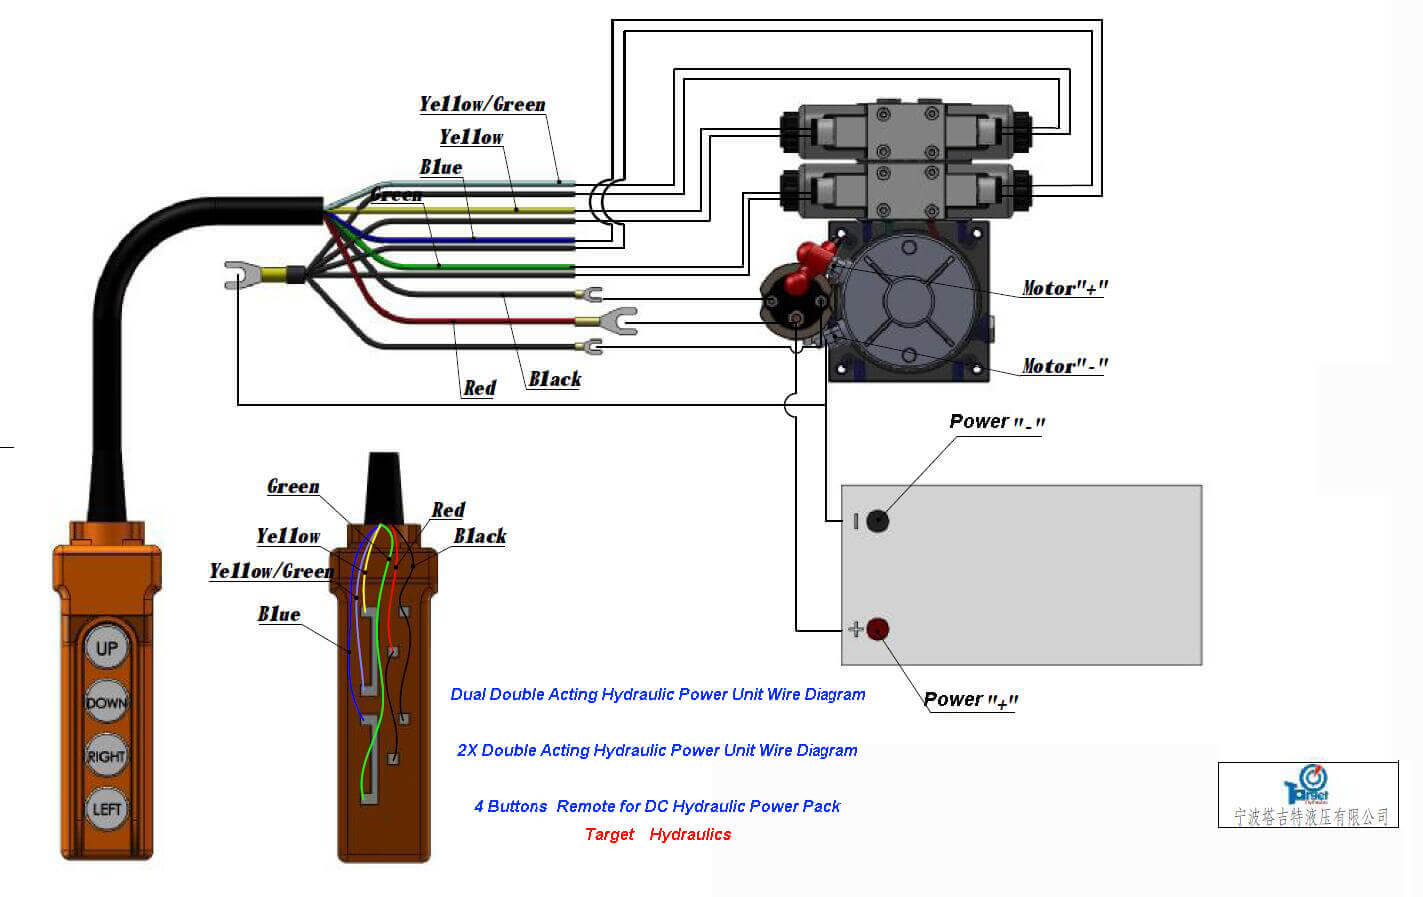 ignition wire diagram  | target-hydraulics.com